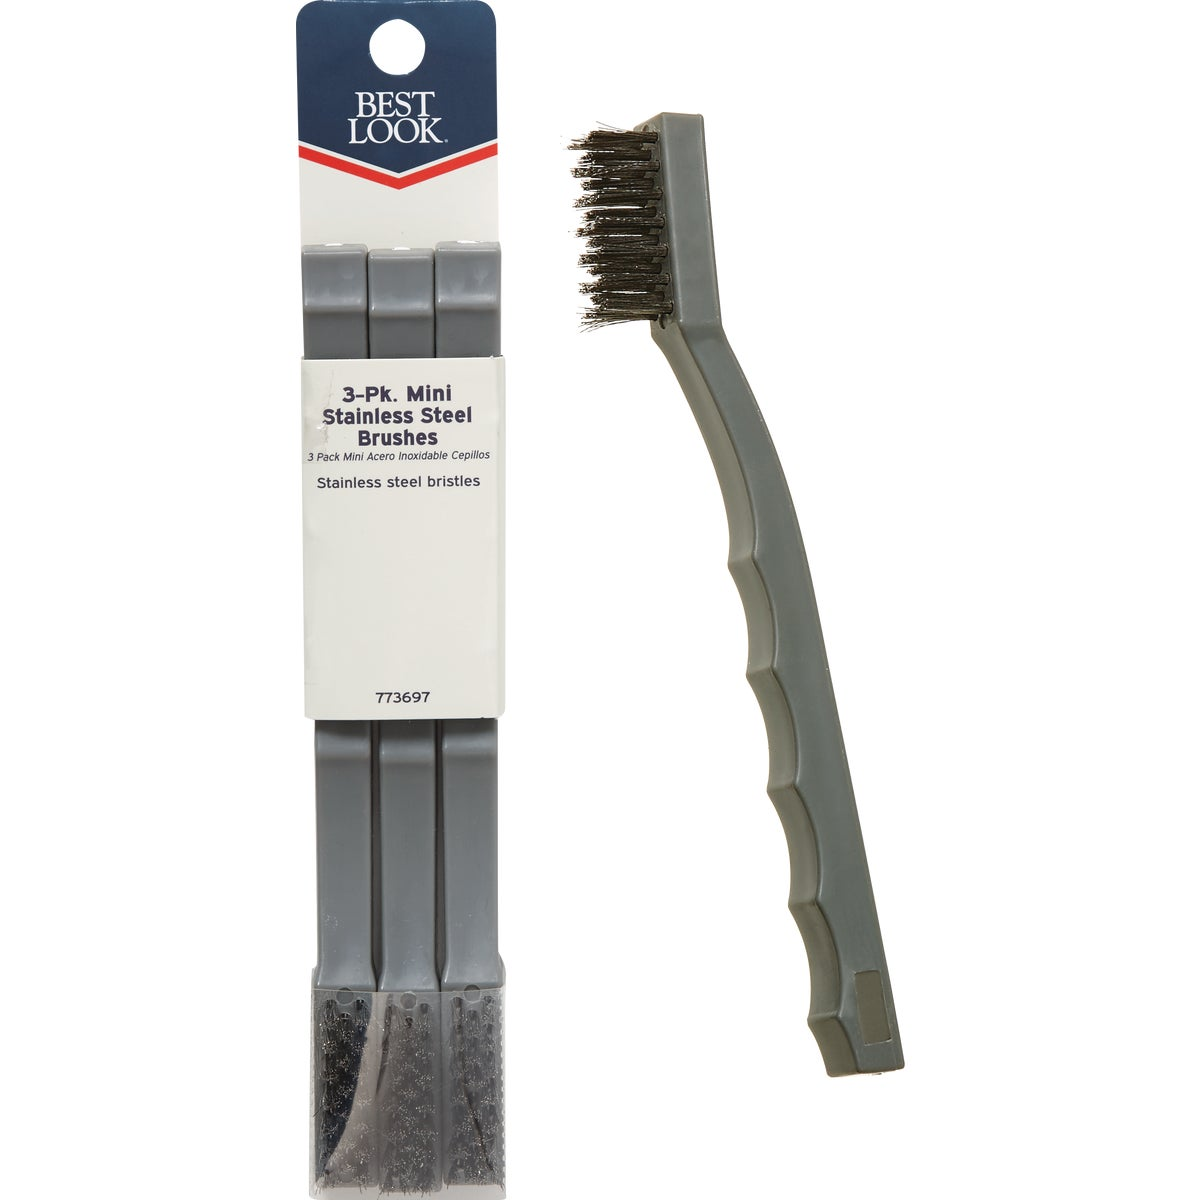 Hyde Mfg. 3PK MINI SS BRUSH 46650